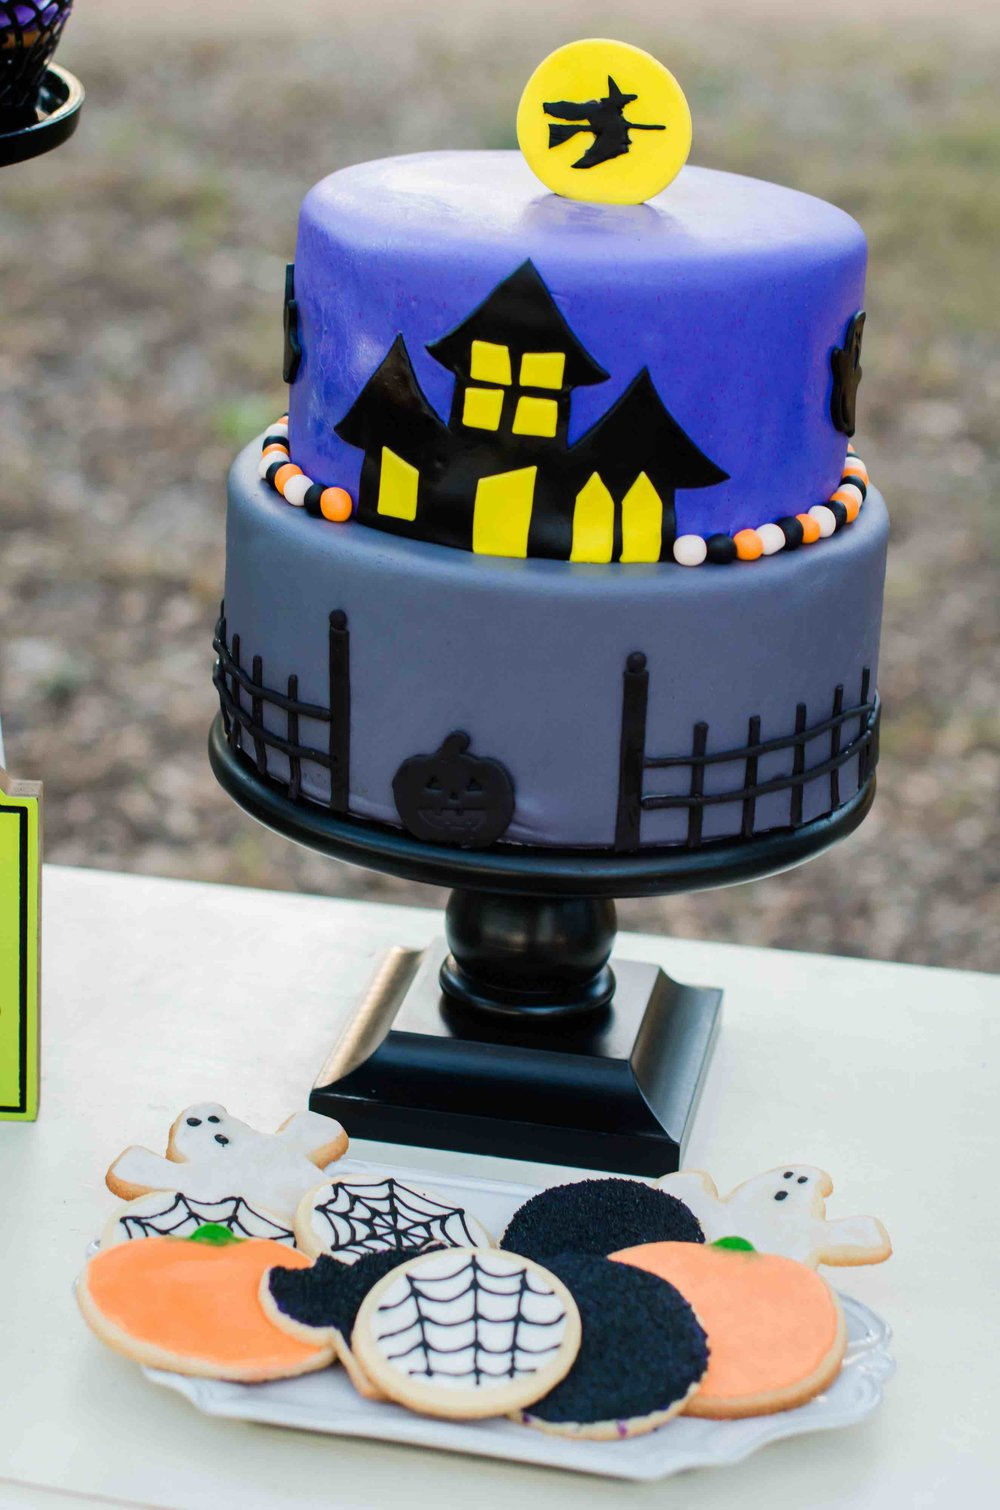 A Halloween Cake decorated with a haunted house, a witch flying on her broomstick and even a black pumpkin. Click to see all the Halloween Party Ideas that you can re-create for your very own Halloween Kids Party. Styled by party stylist Mint Event Design. #halloween #partyideas #partyinspiration #halloweencake #desserttable #halloweencookies